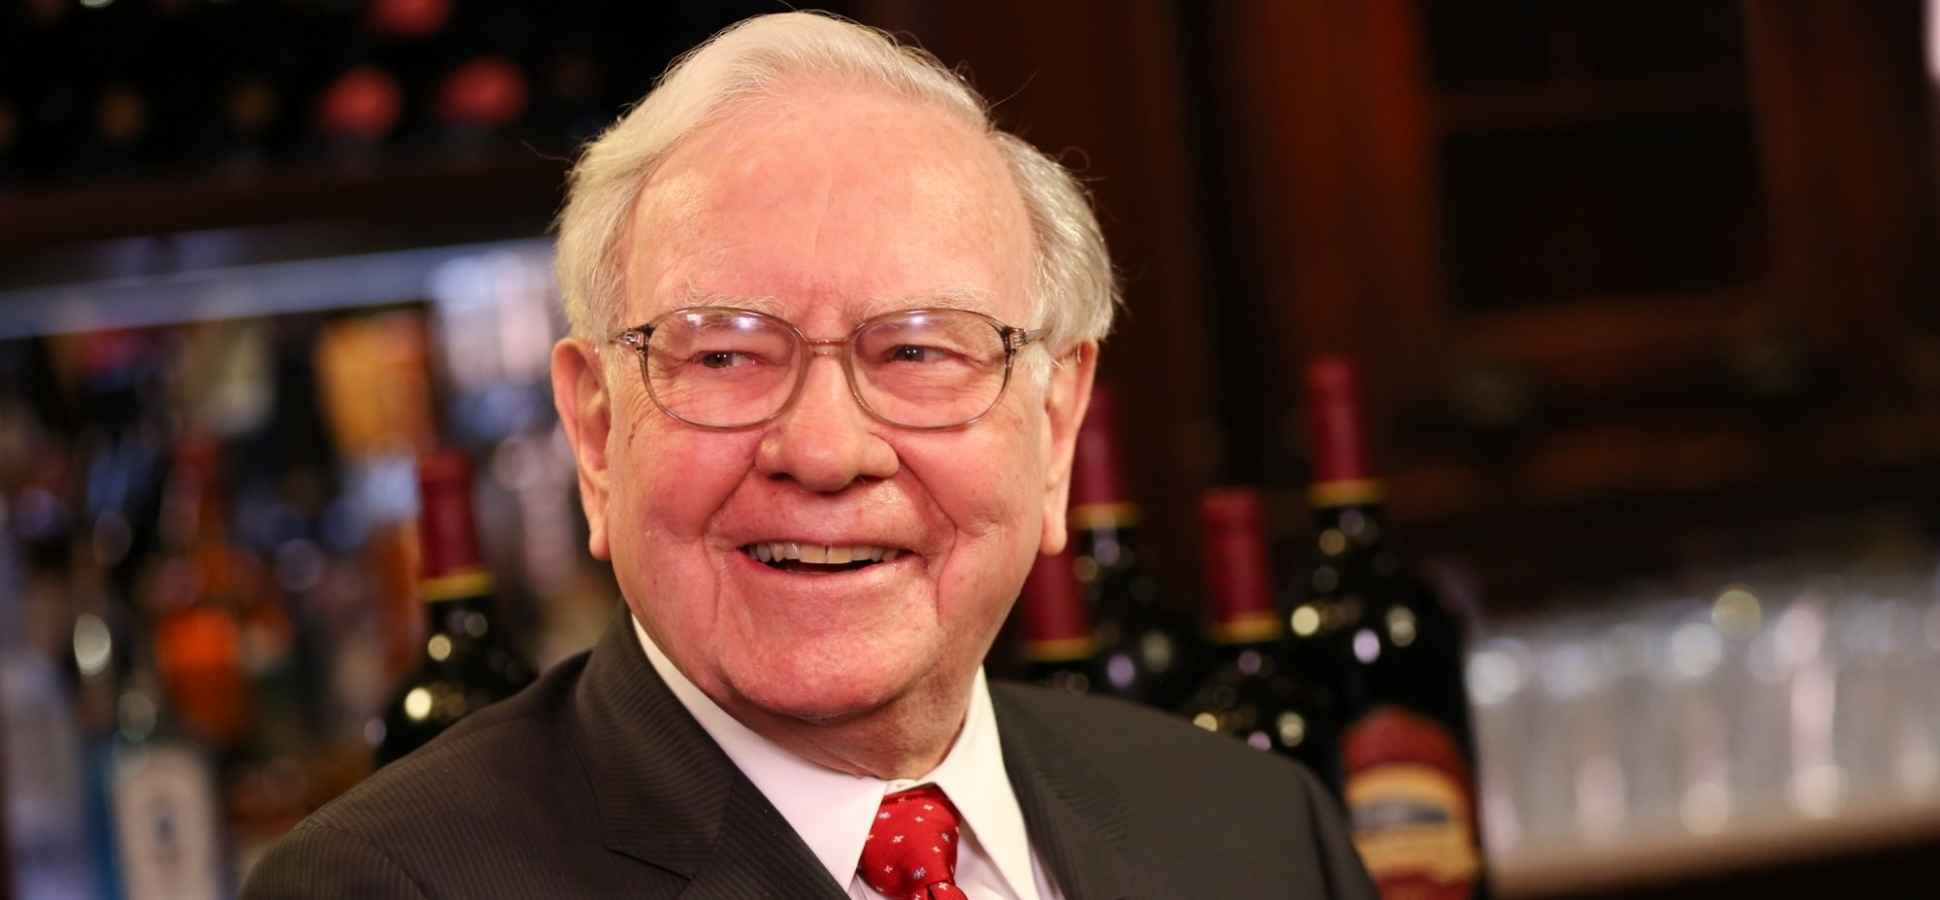 Want to Be Happy? Do These 6 Things, According to Warren Buffett